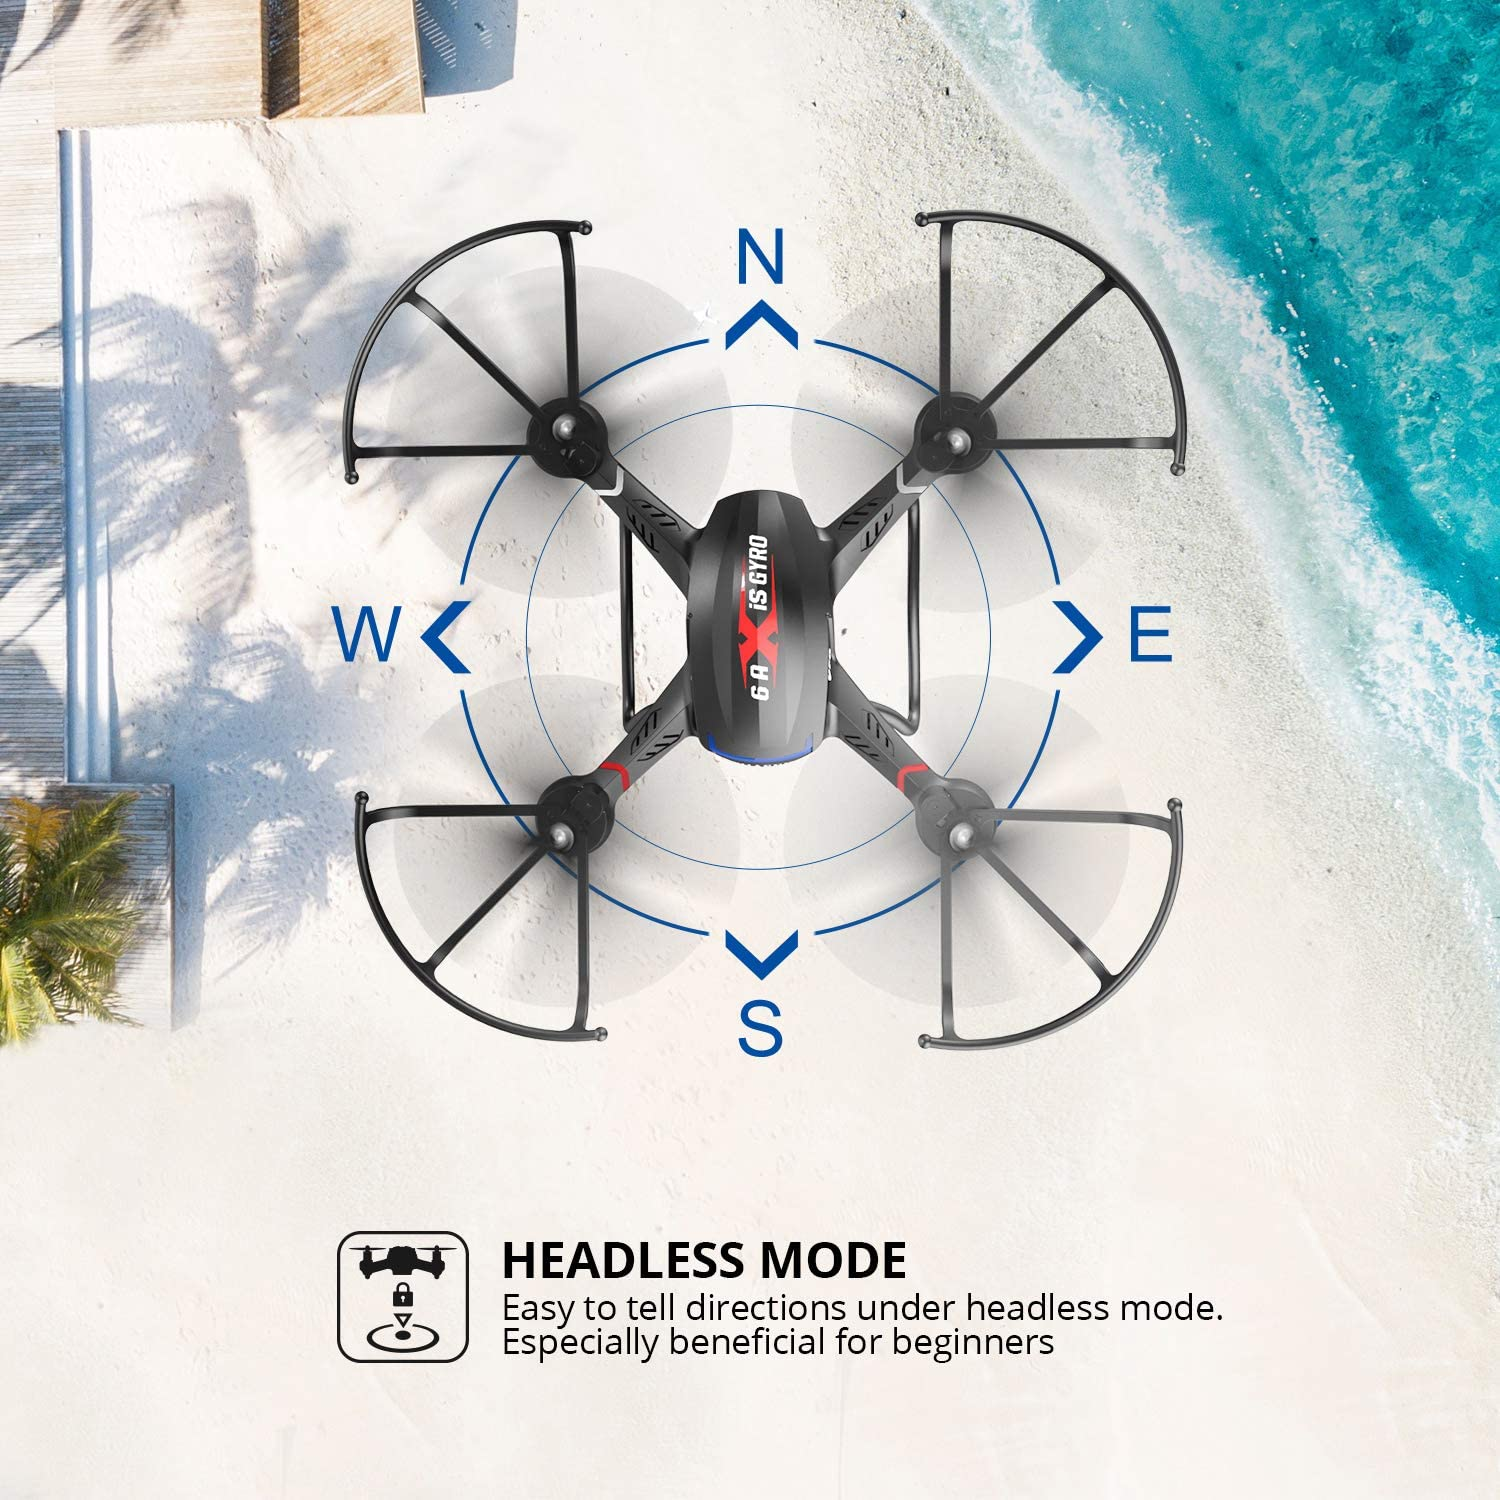 Holy Stone F181W WIfi Fpv Drone review about headless mode feature